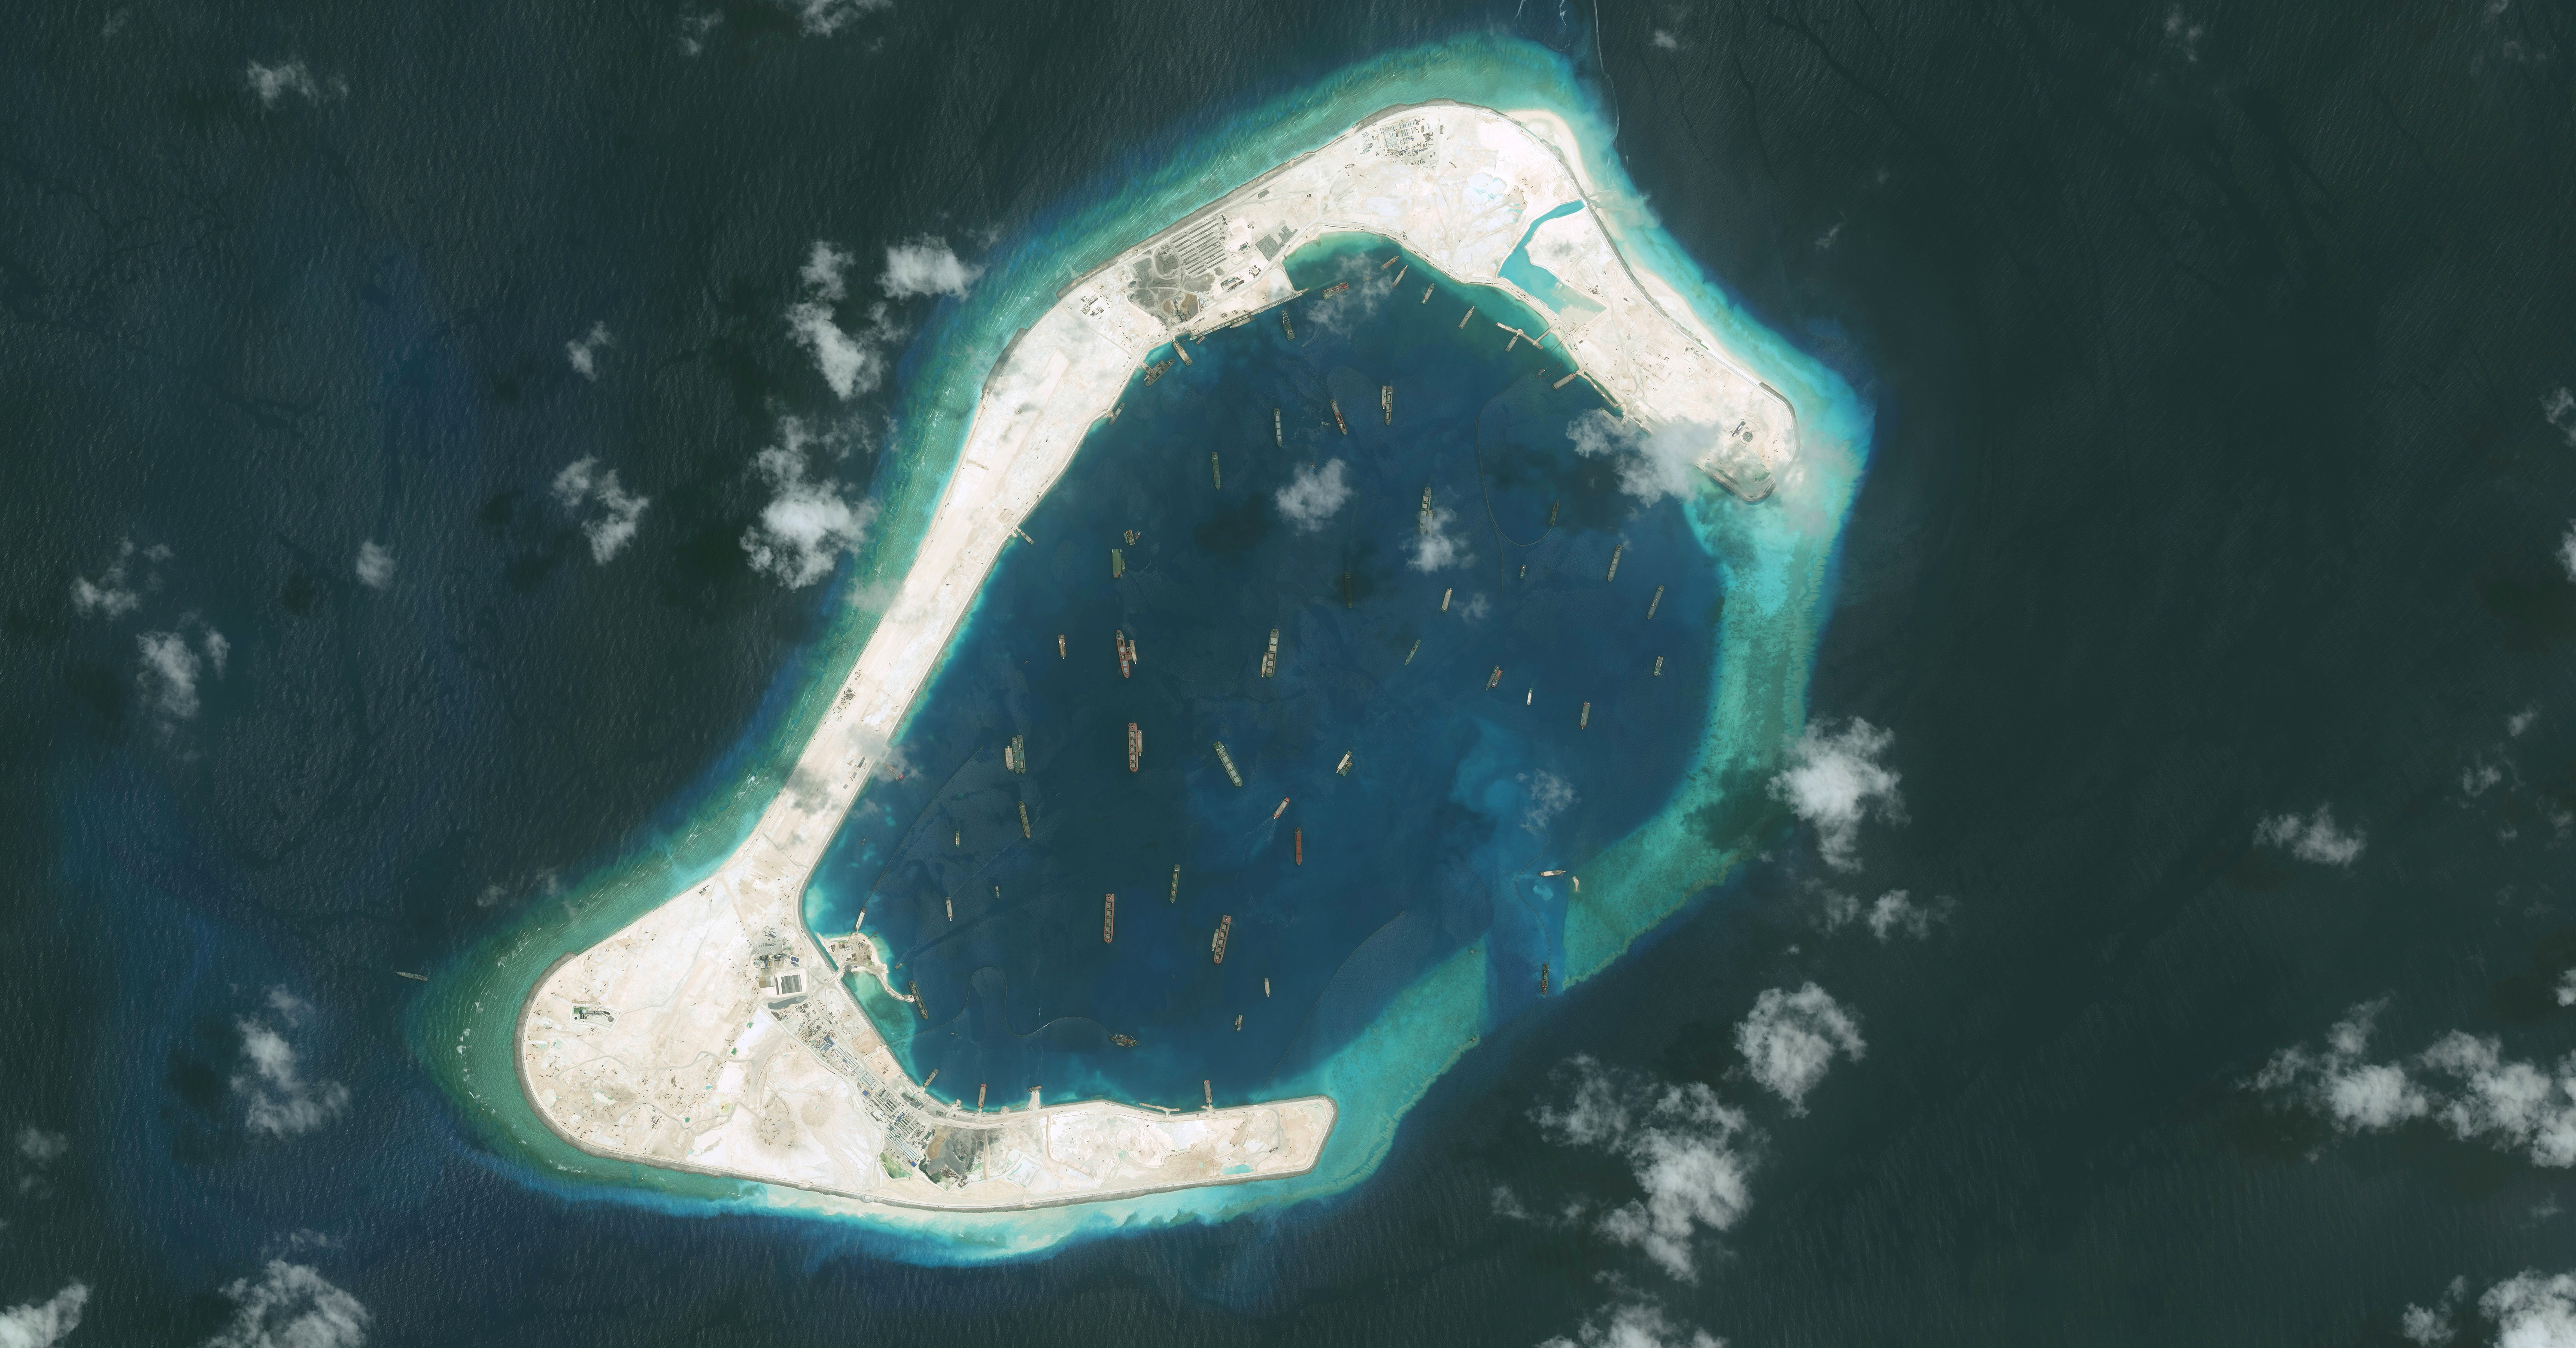 DigitalGlobe imagery shows the Subi Reef in the South China Sea, a part of the Spratly Islands group, on Sept. 1, 2015